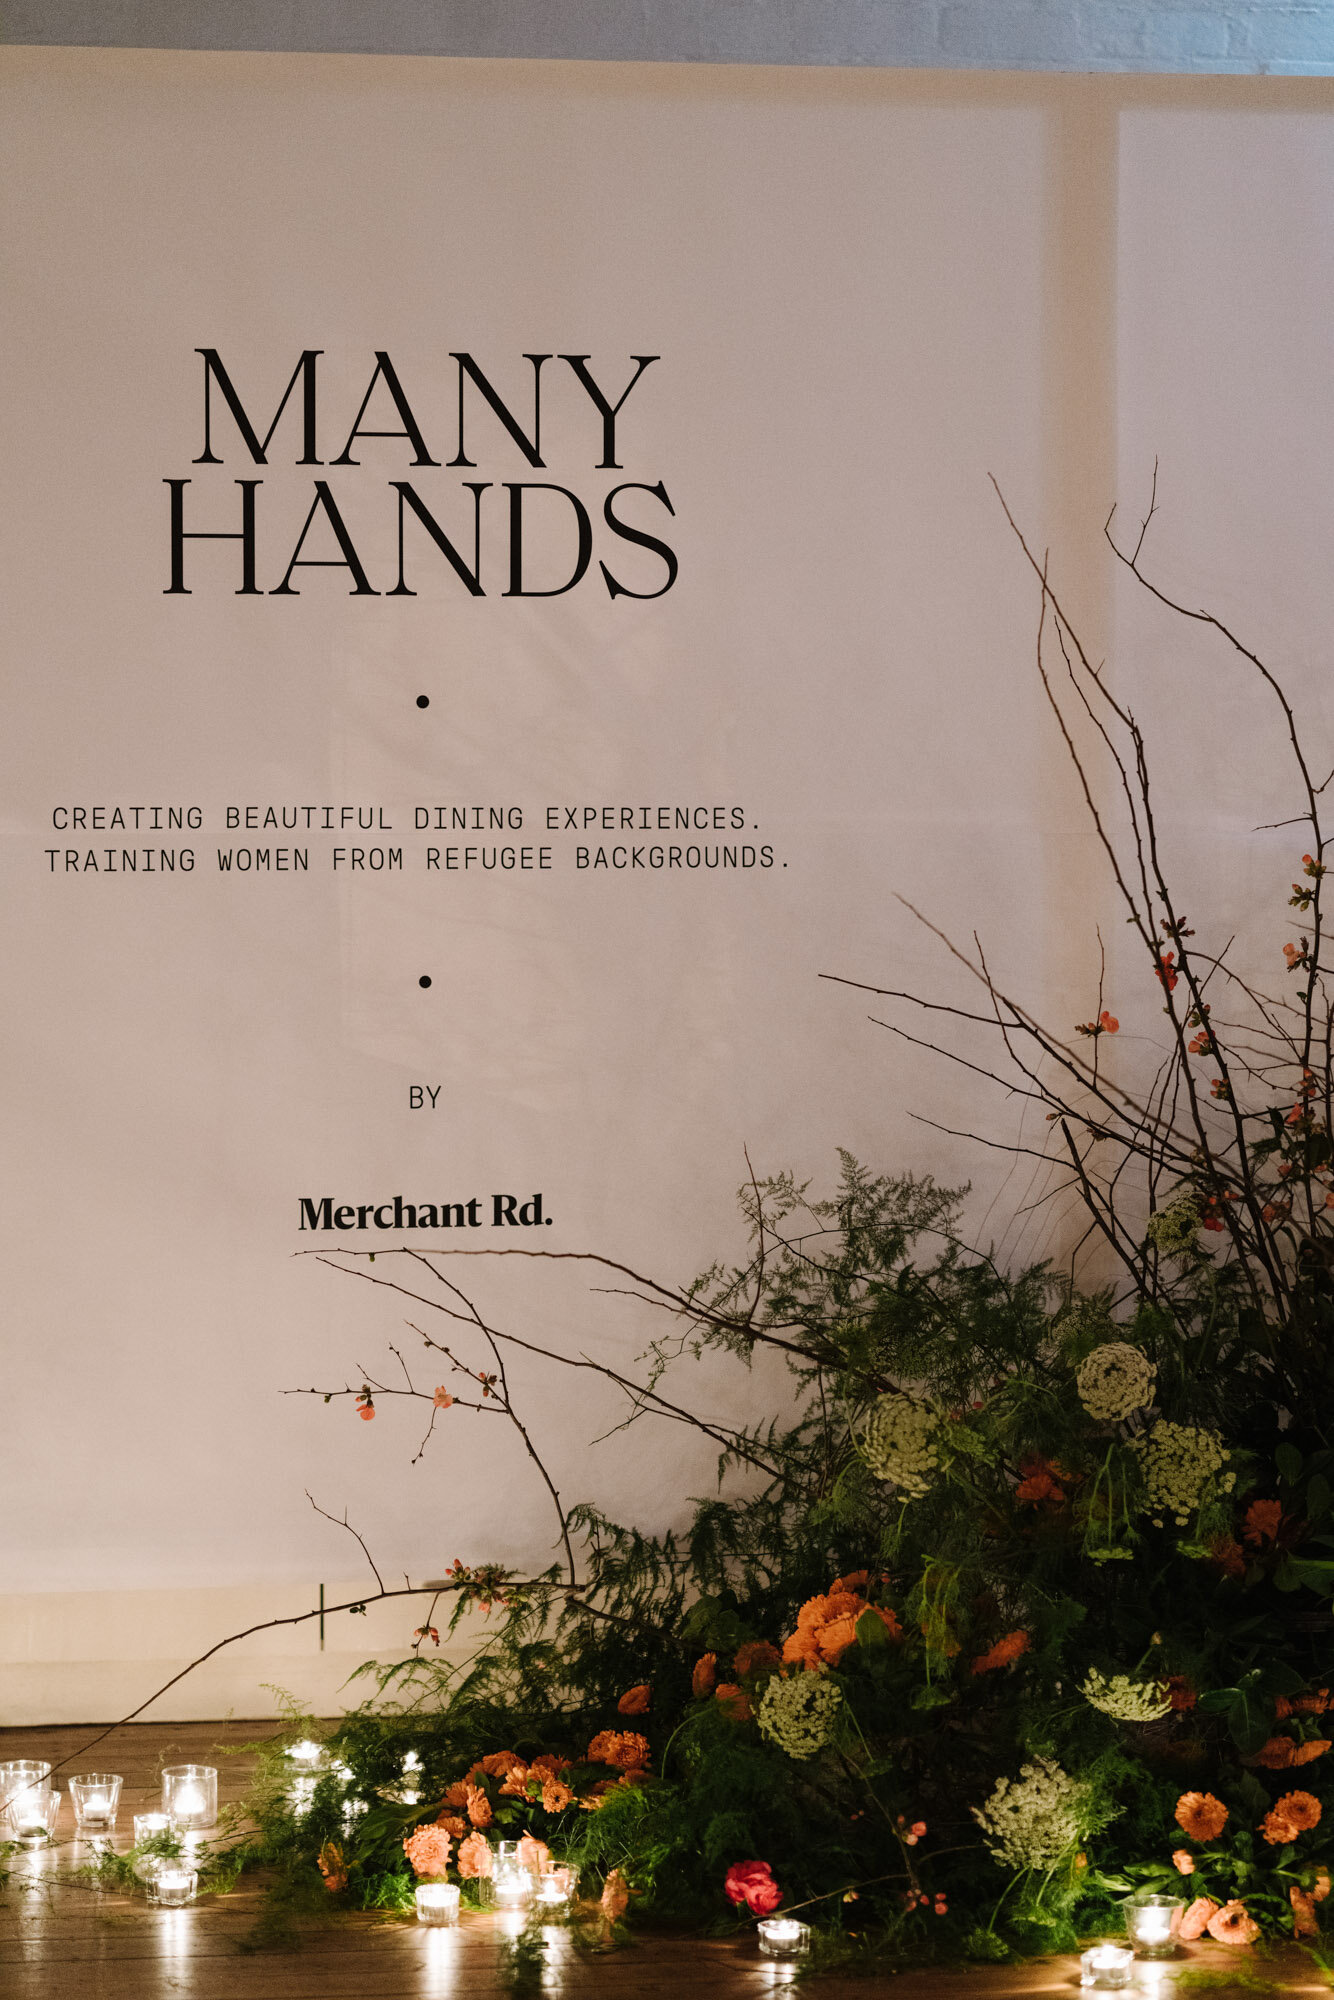 Many Hands for Merchant Road, a training program for women from refugee backgrounds. Photography by purpose-driven photographer Marnie Hawson.